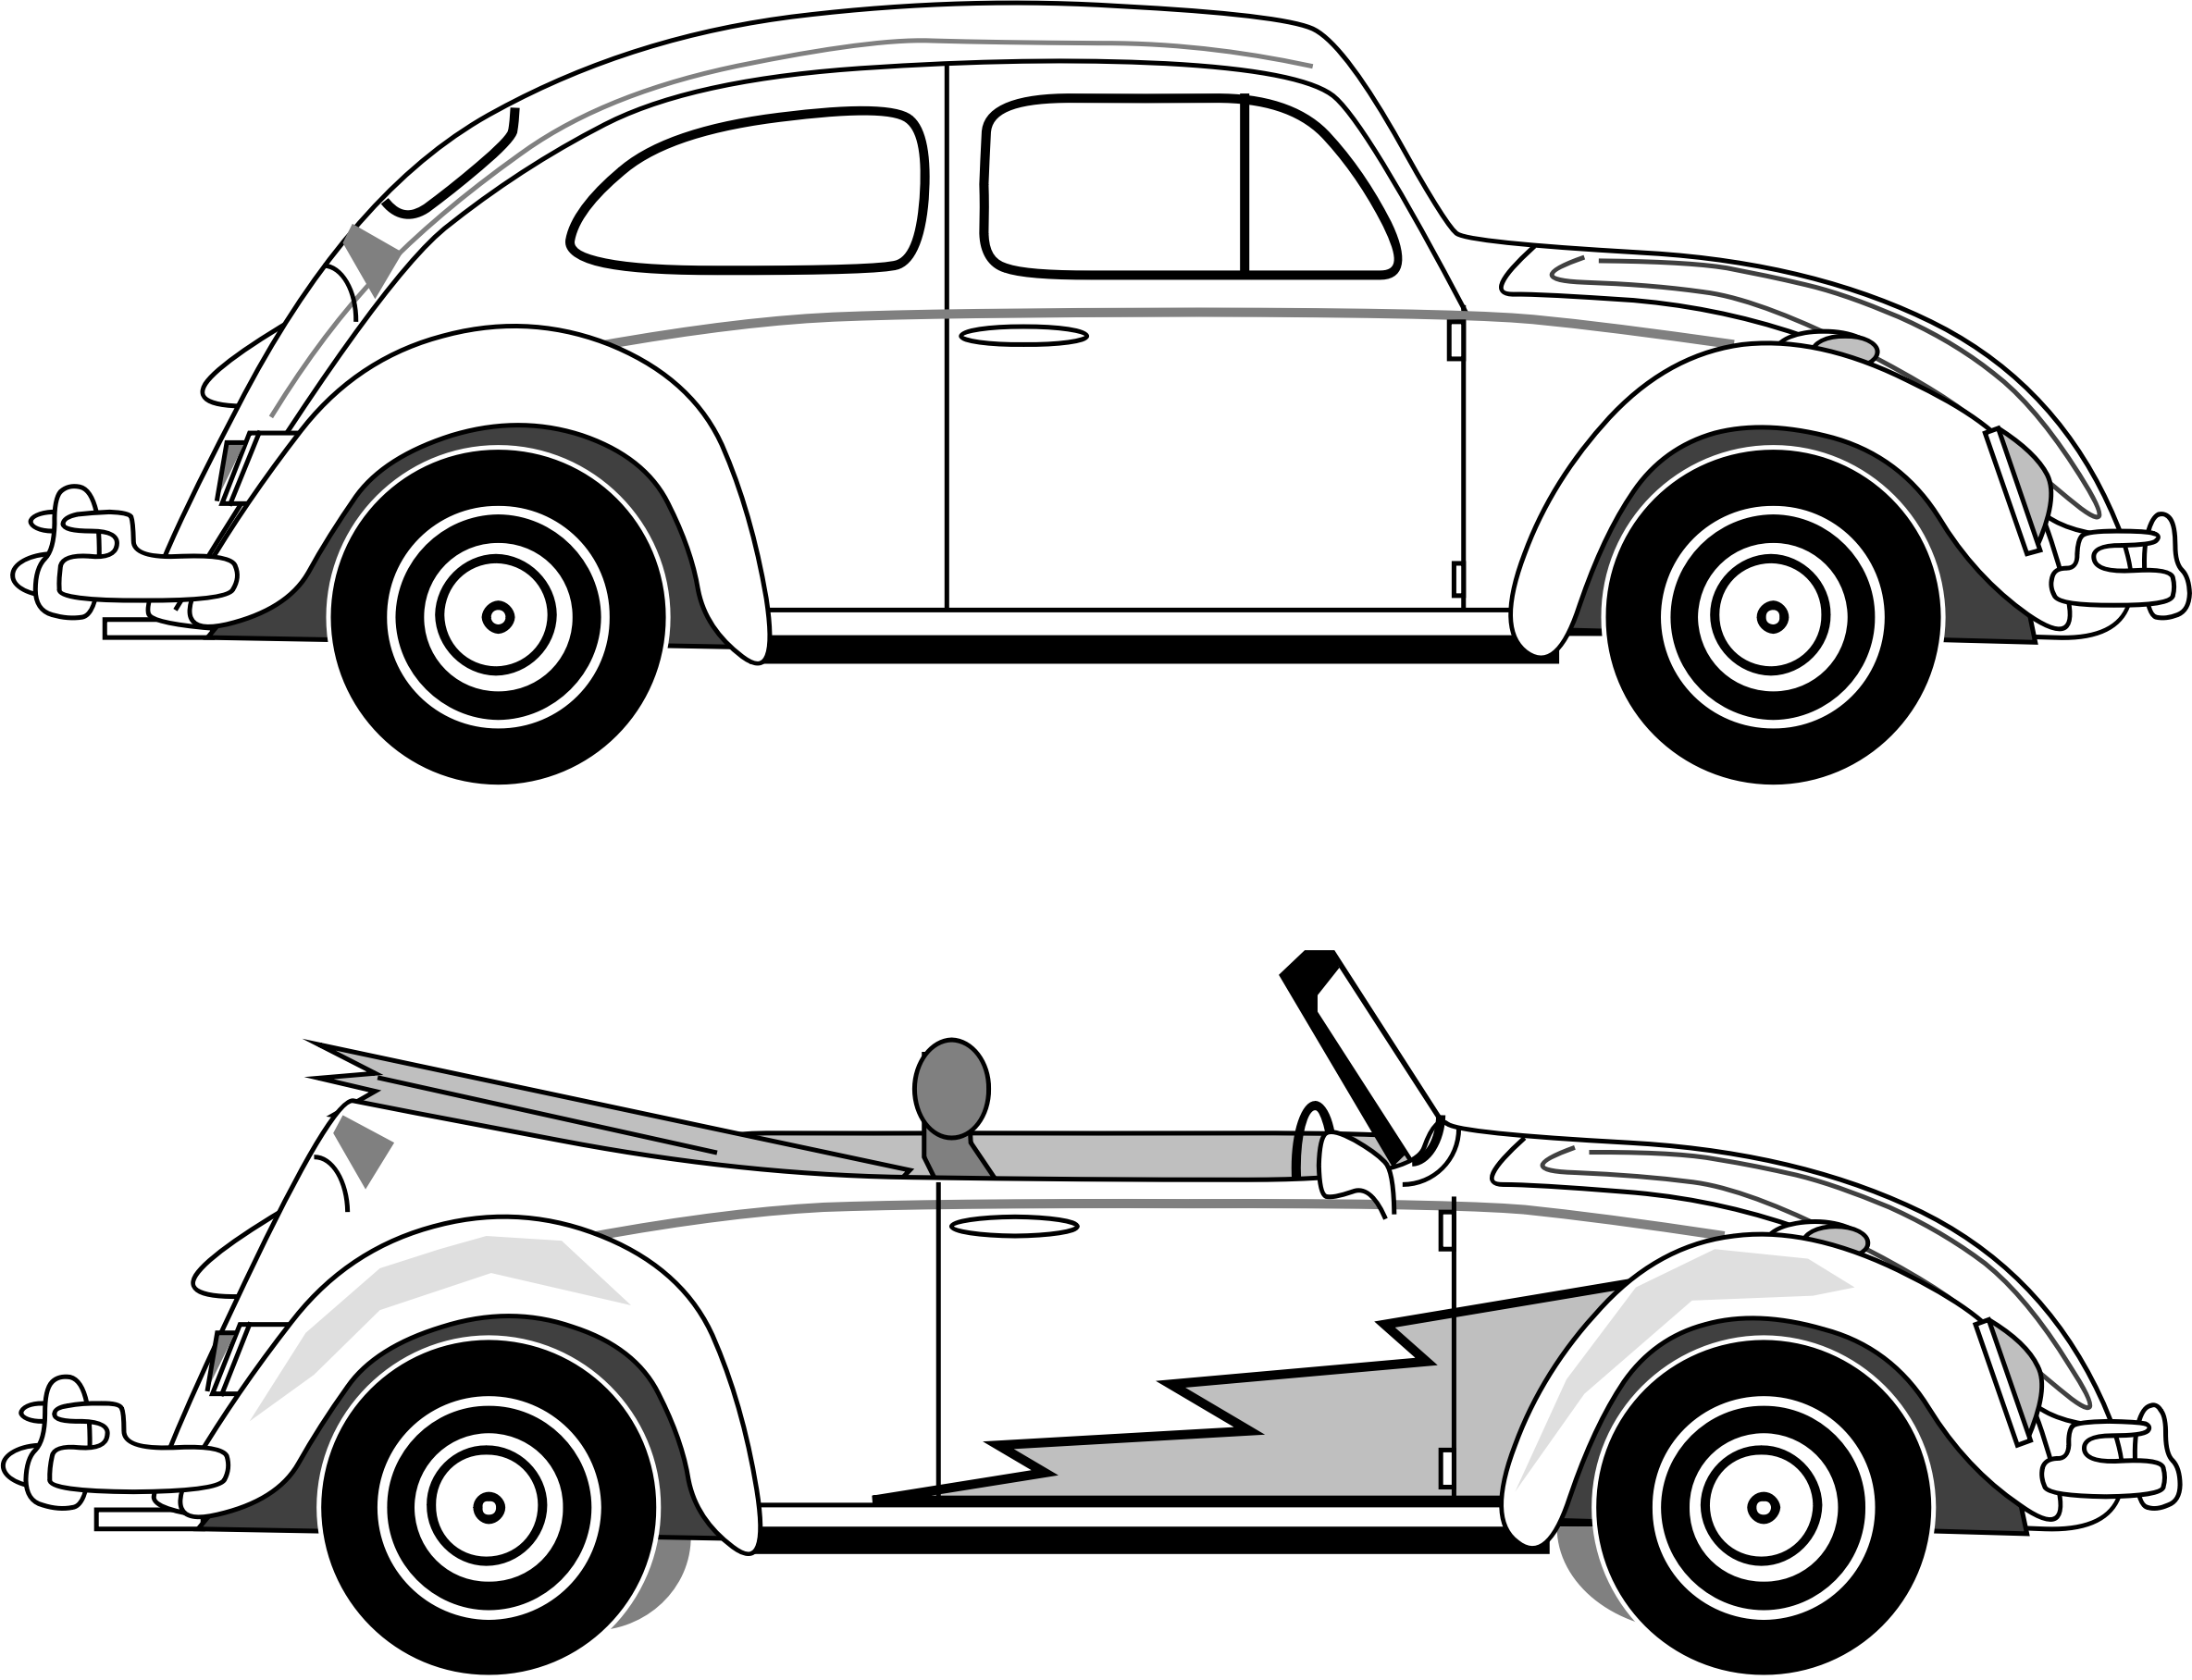 Clipart car beetle. Vw silhouette at getdrawings